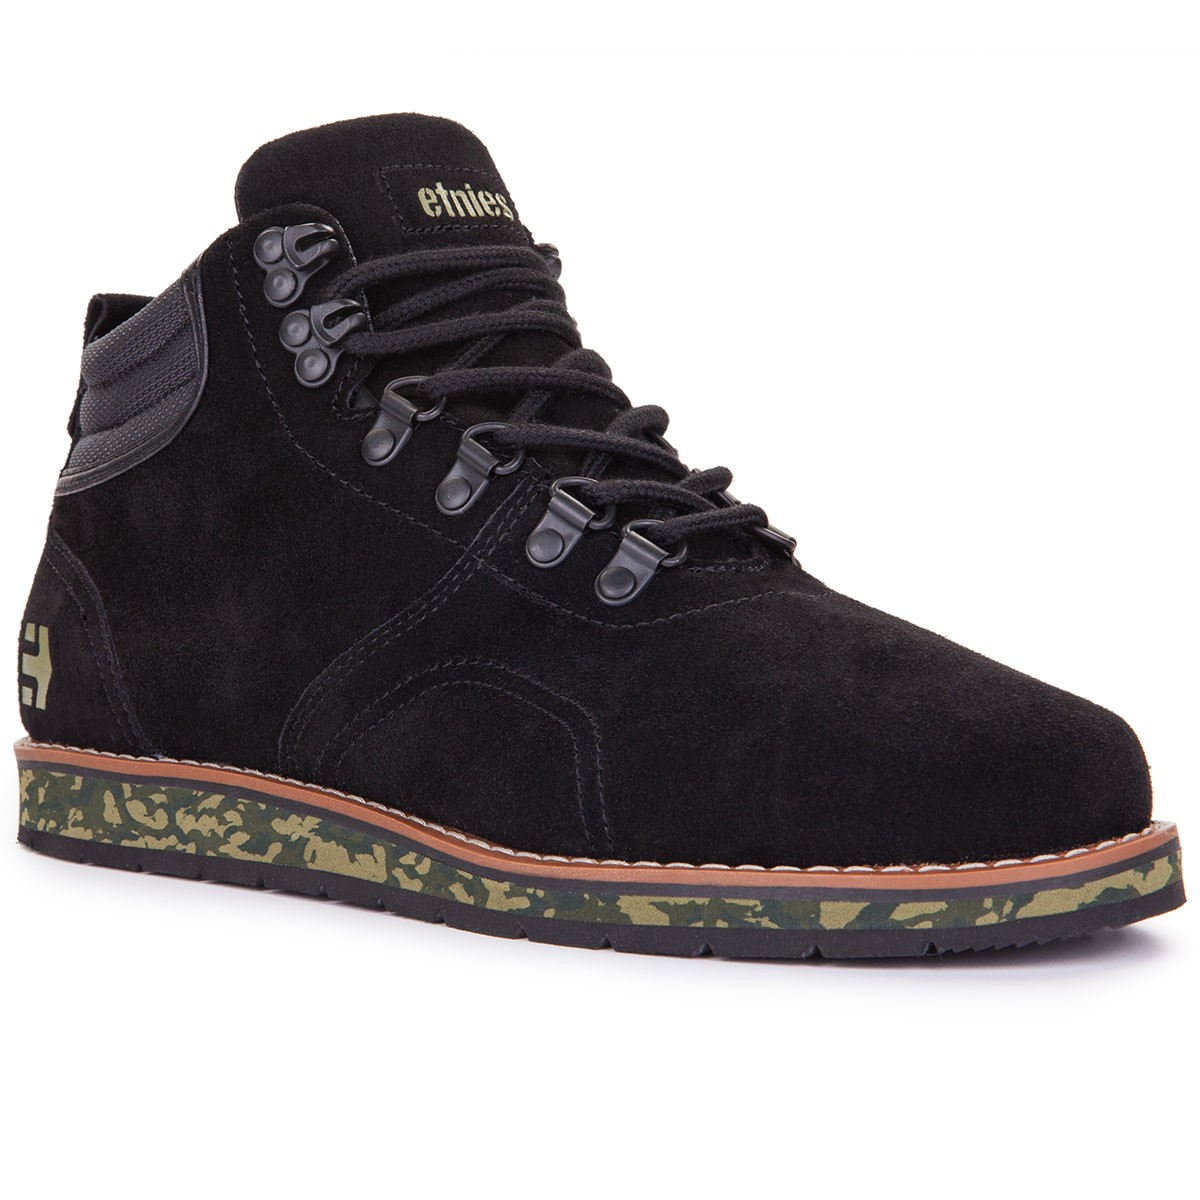 Etnies Polarise Shoes - Black/Green - 9.0